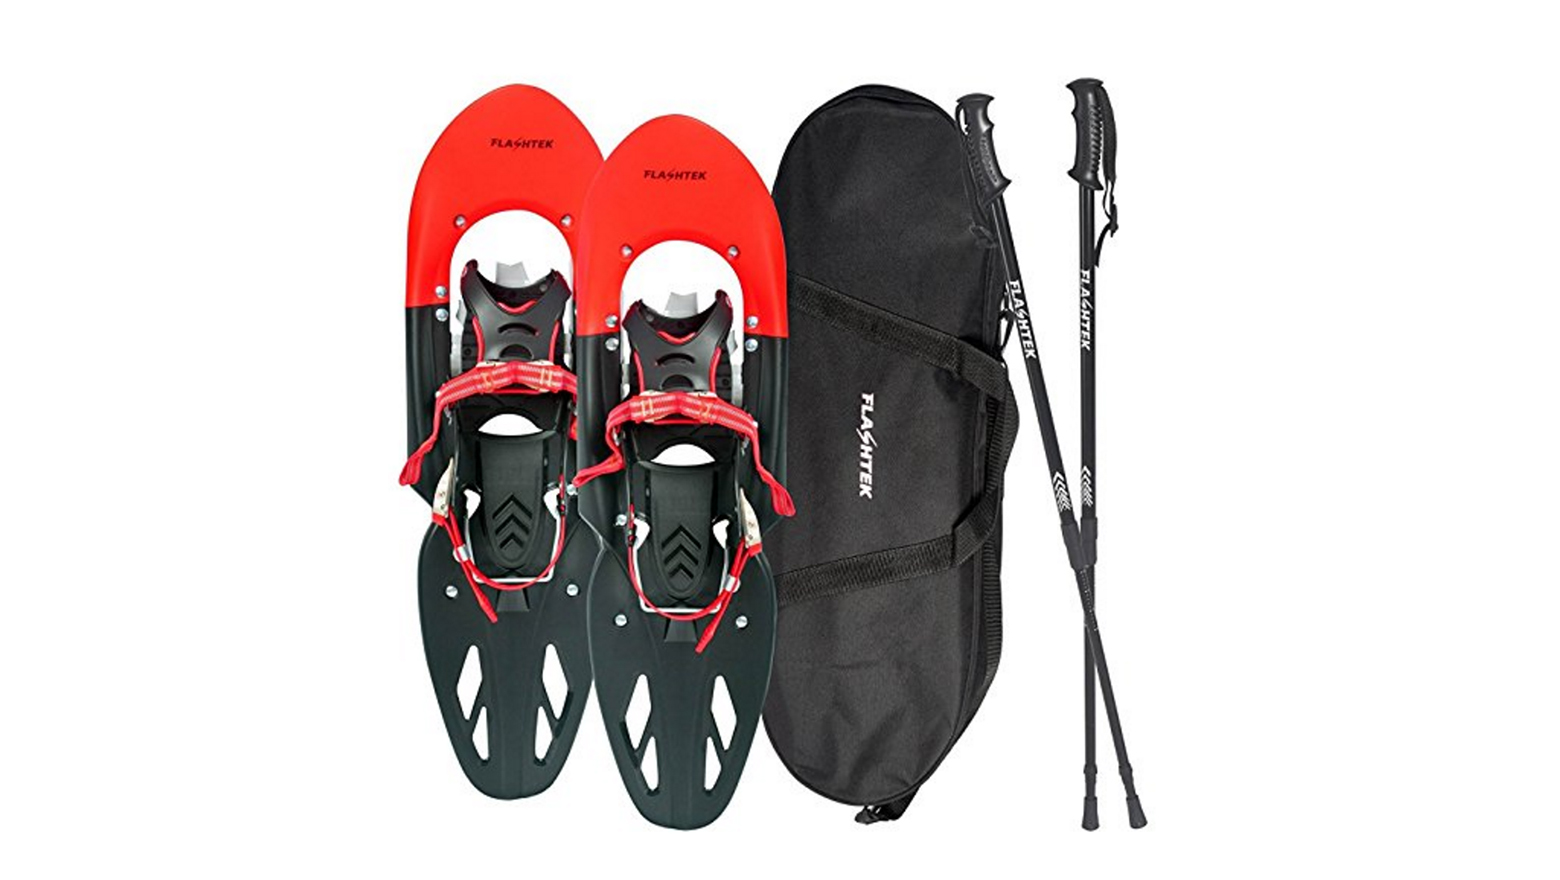 Amazon, cyber monday, cyber monday sales, cyber Monday, camping gear, outdoor gear, sports equipment, snowshoes, flashtek